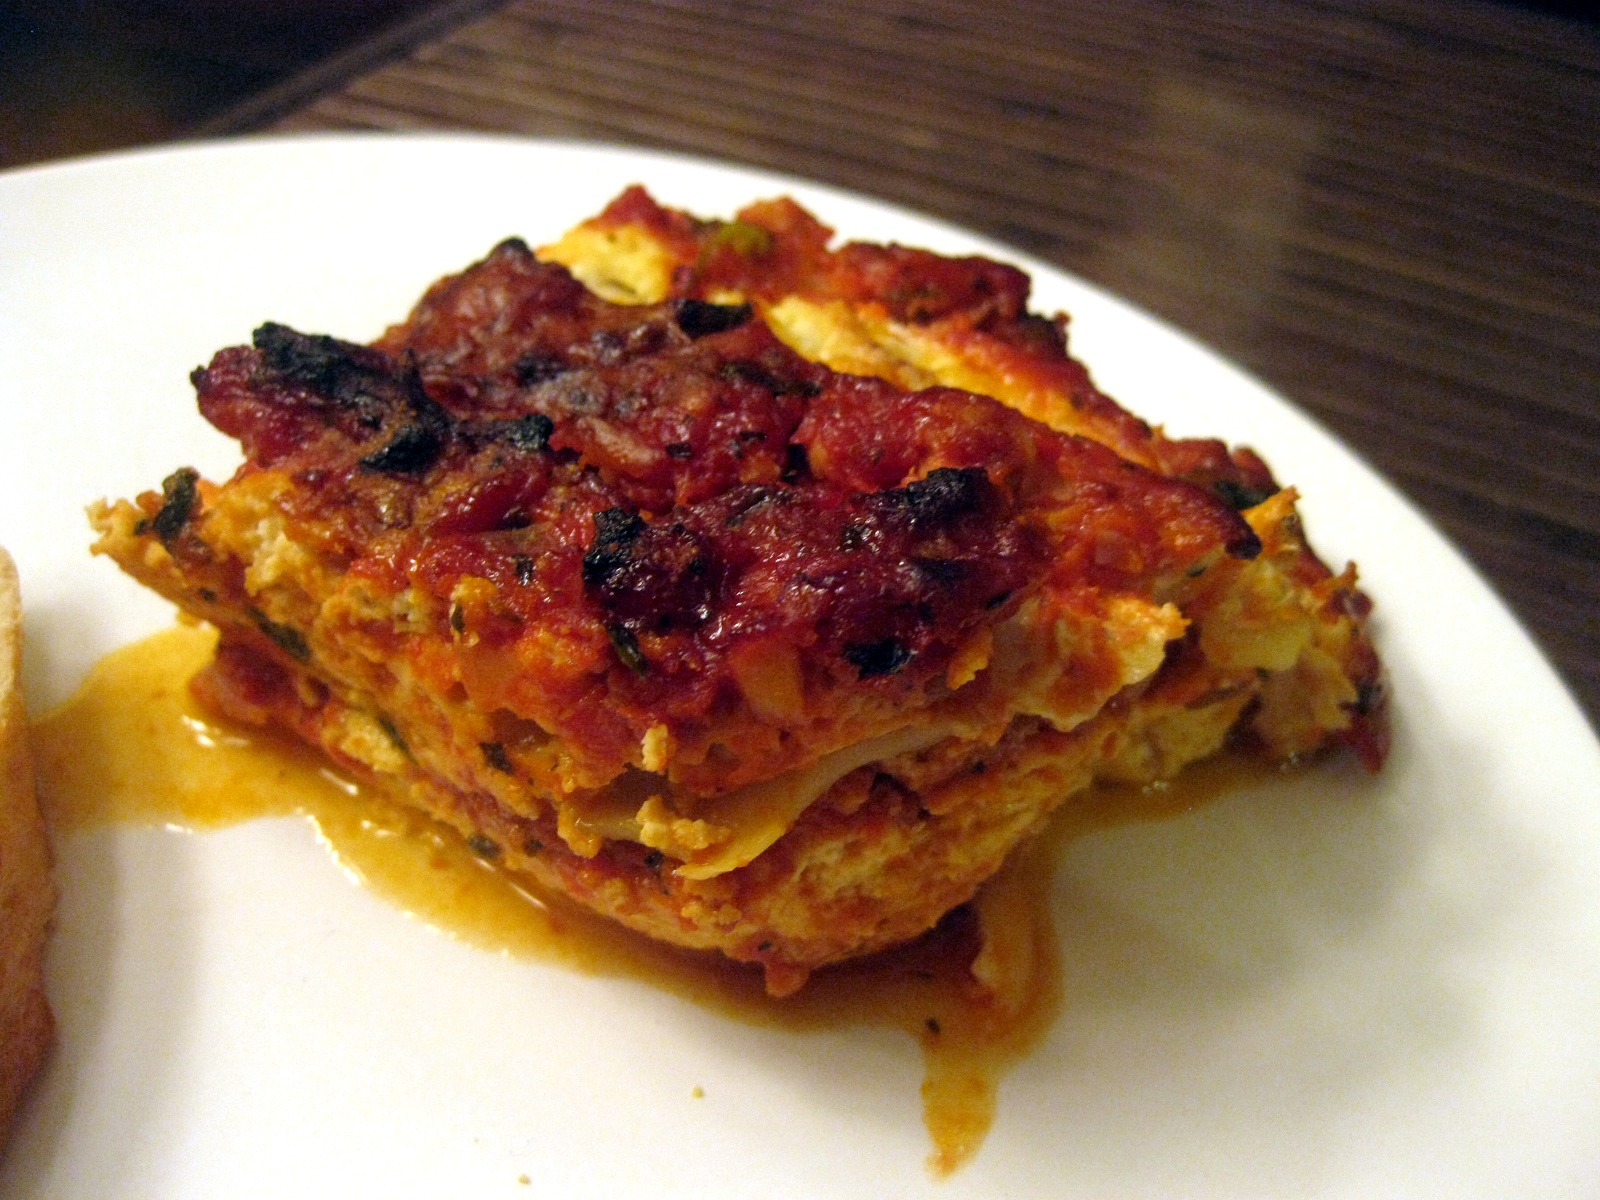 My Life On A Plate: Turkey Sausage Lasagna